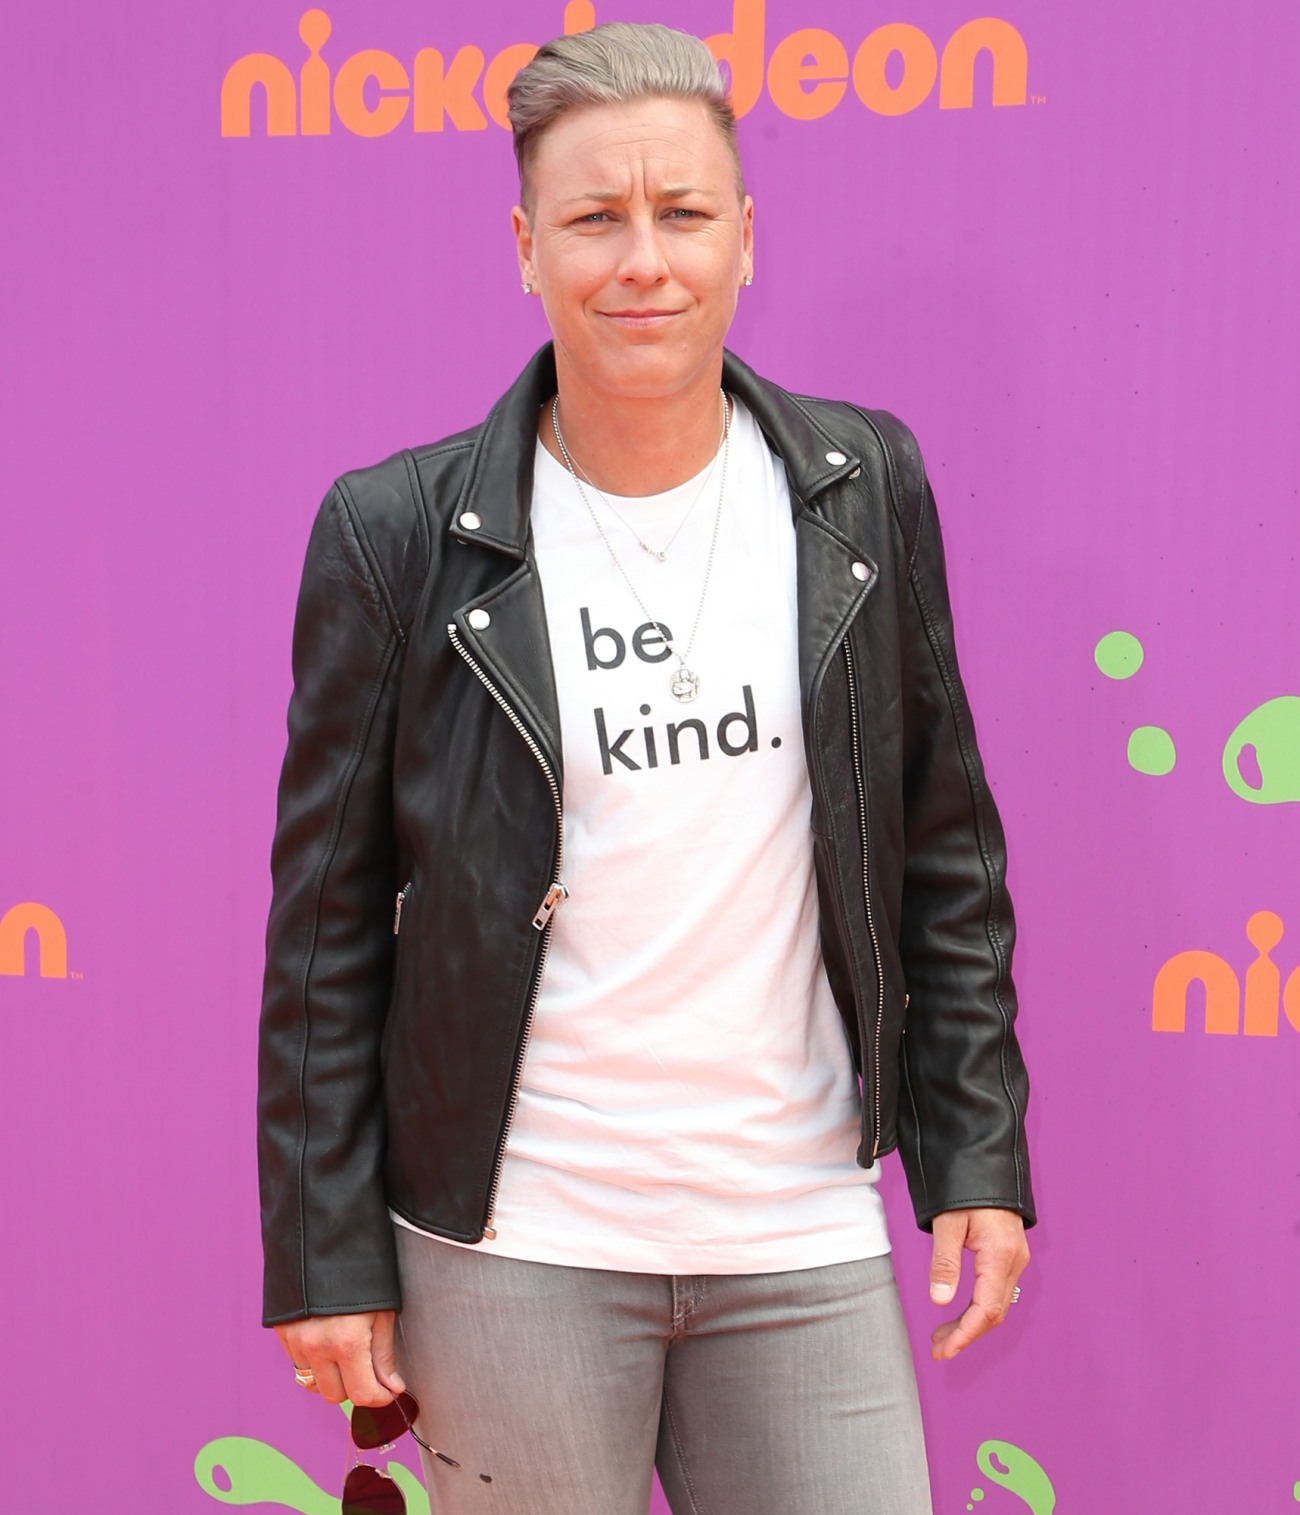 Abby Wambach has some thoughts about what happened to Serena Williams